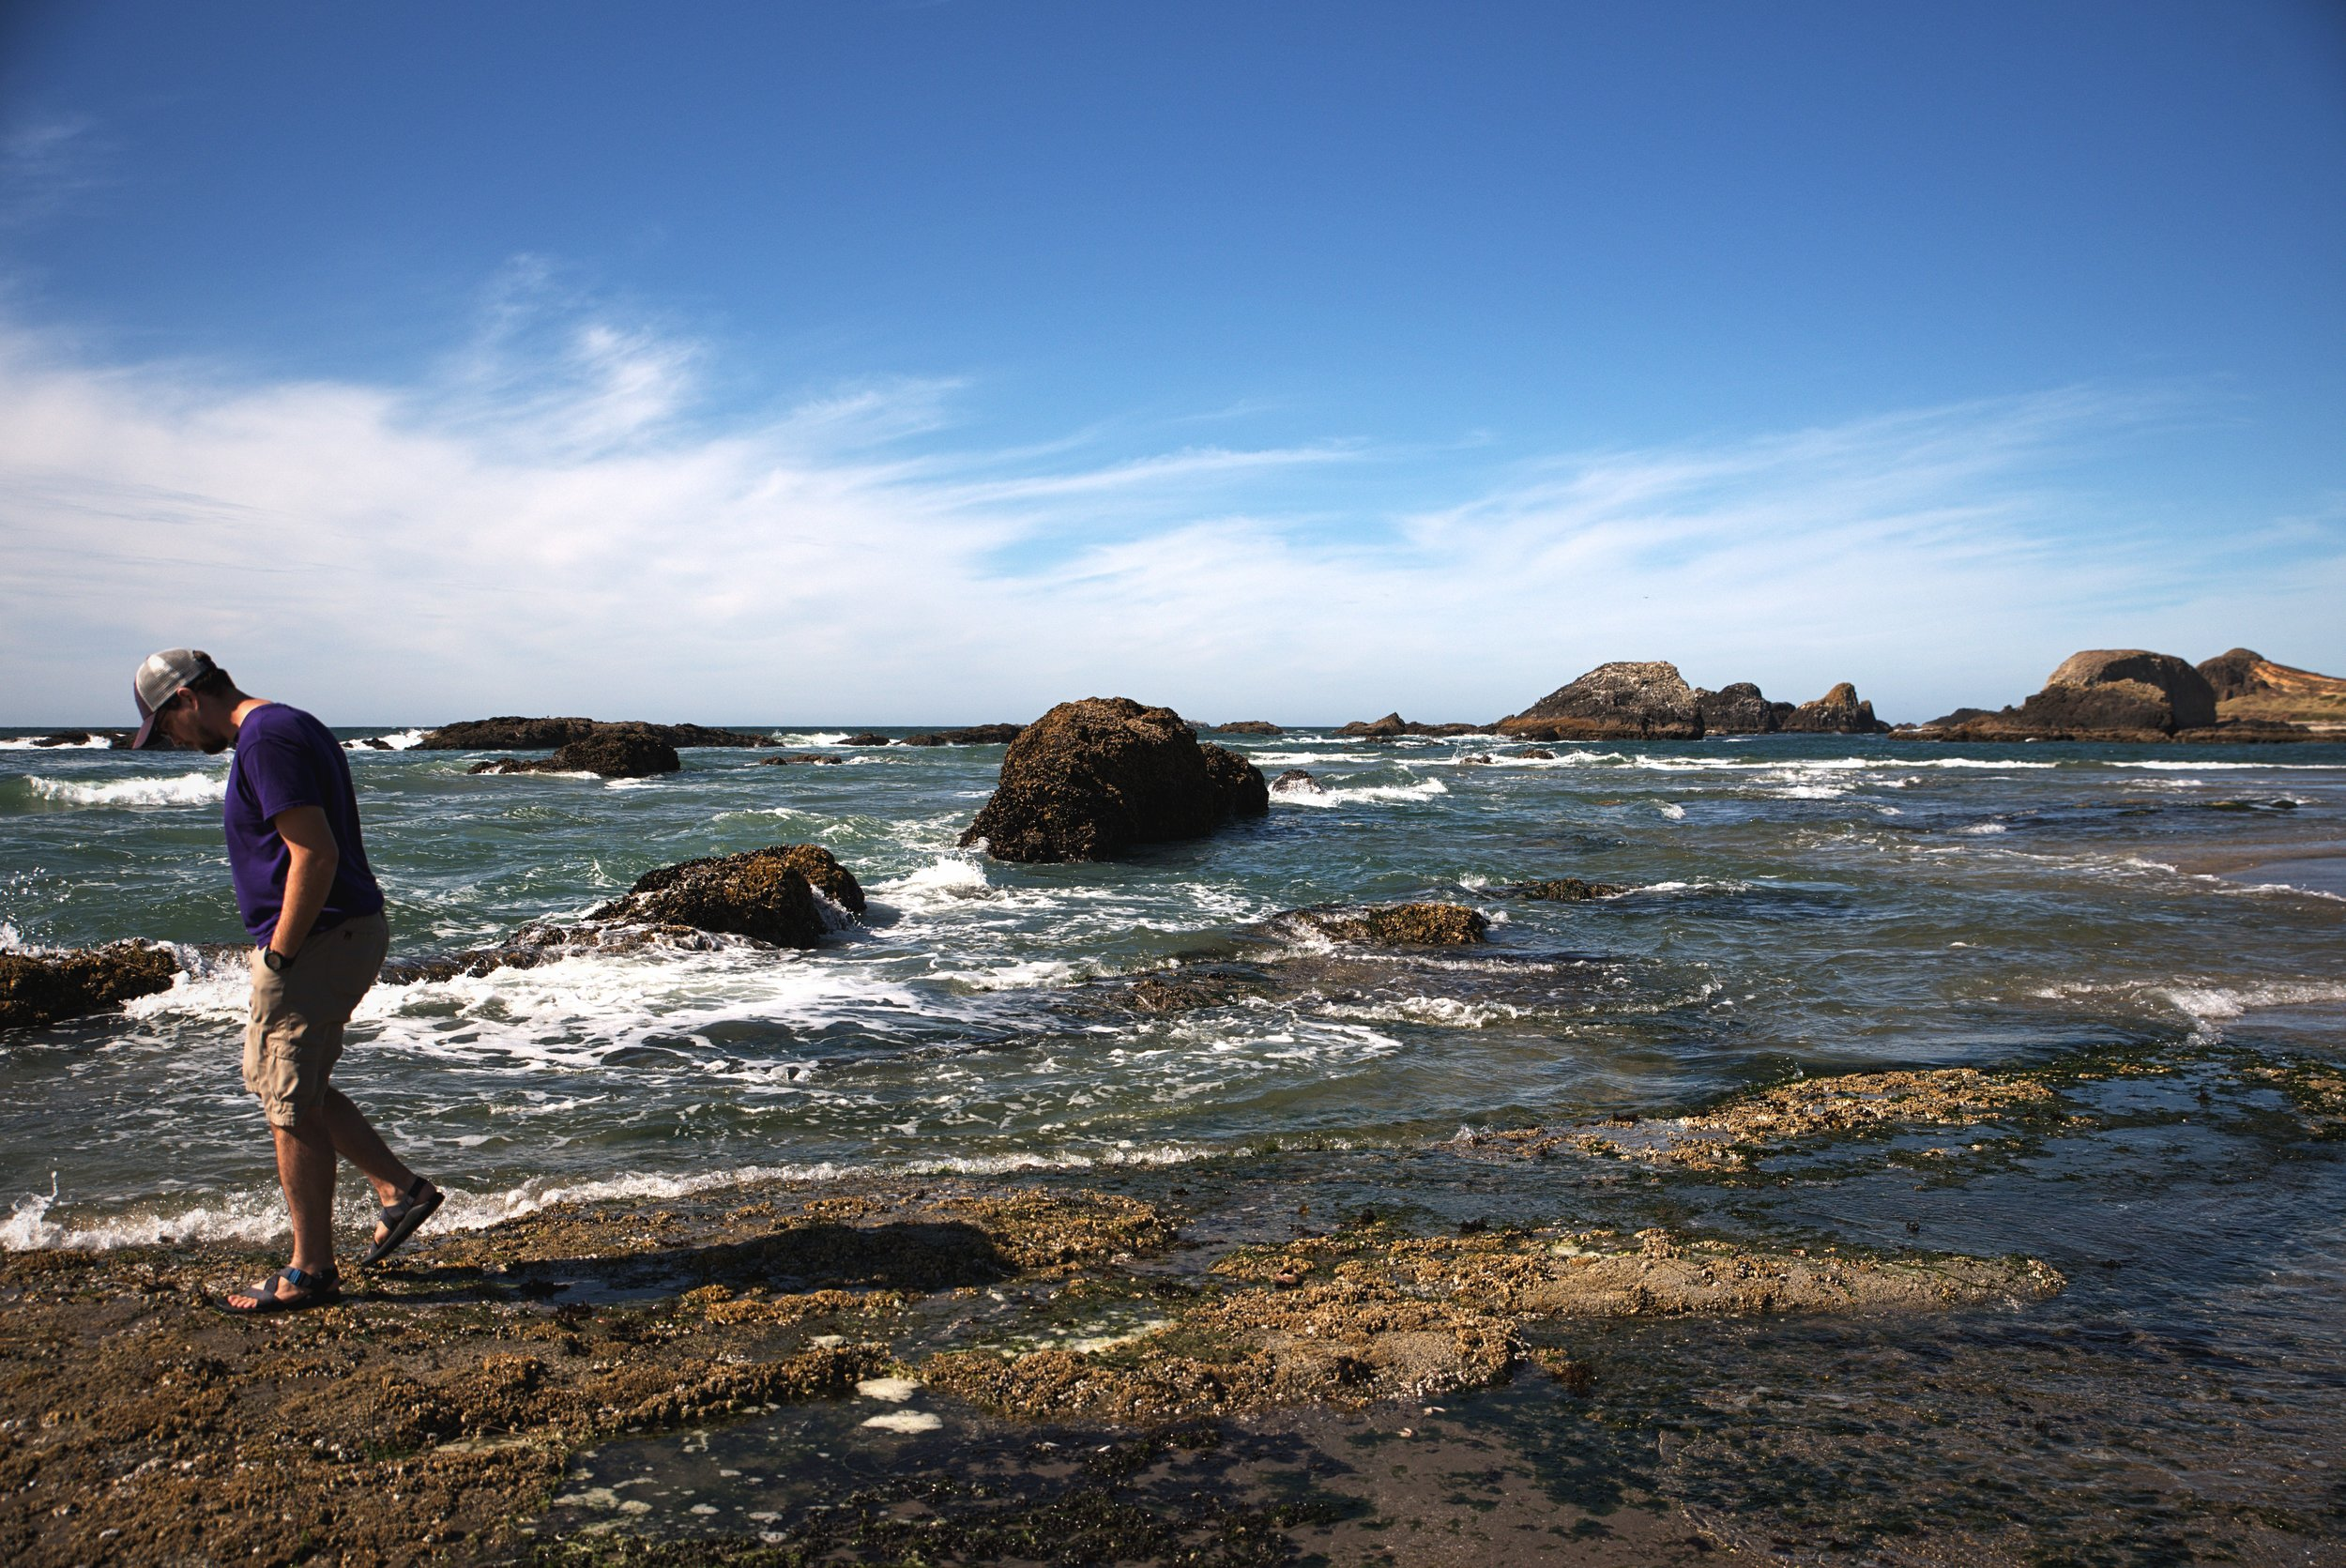 Ian explores some of the inter-tidal zone on the shore at Seal Rock State Park.